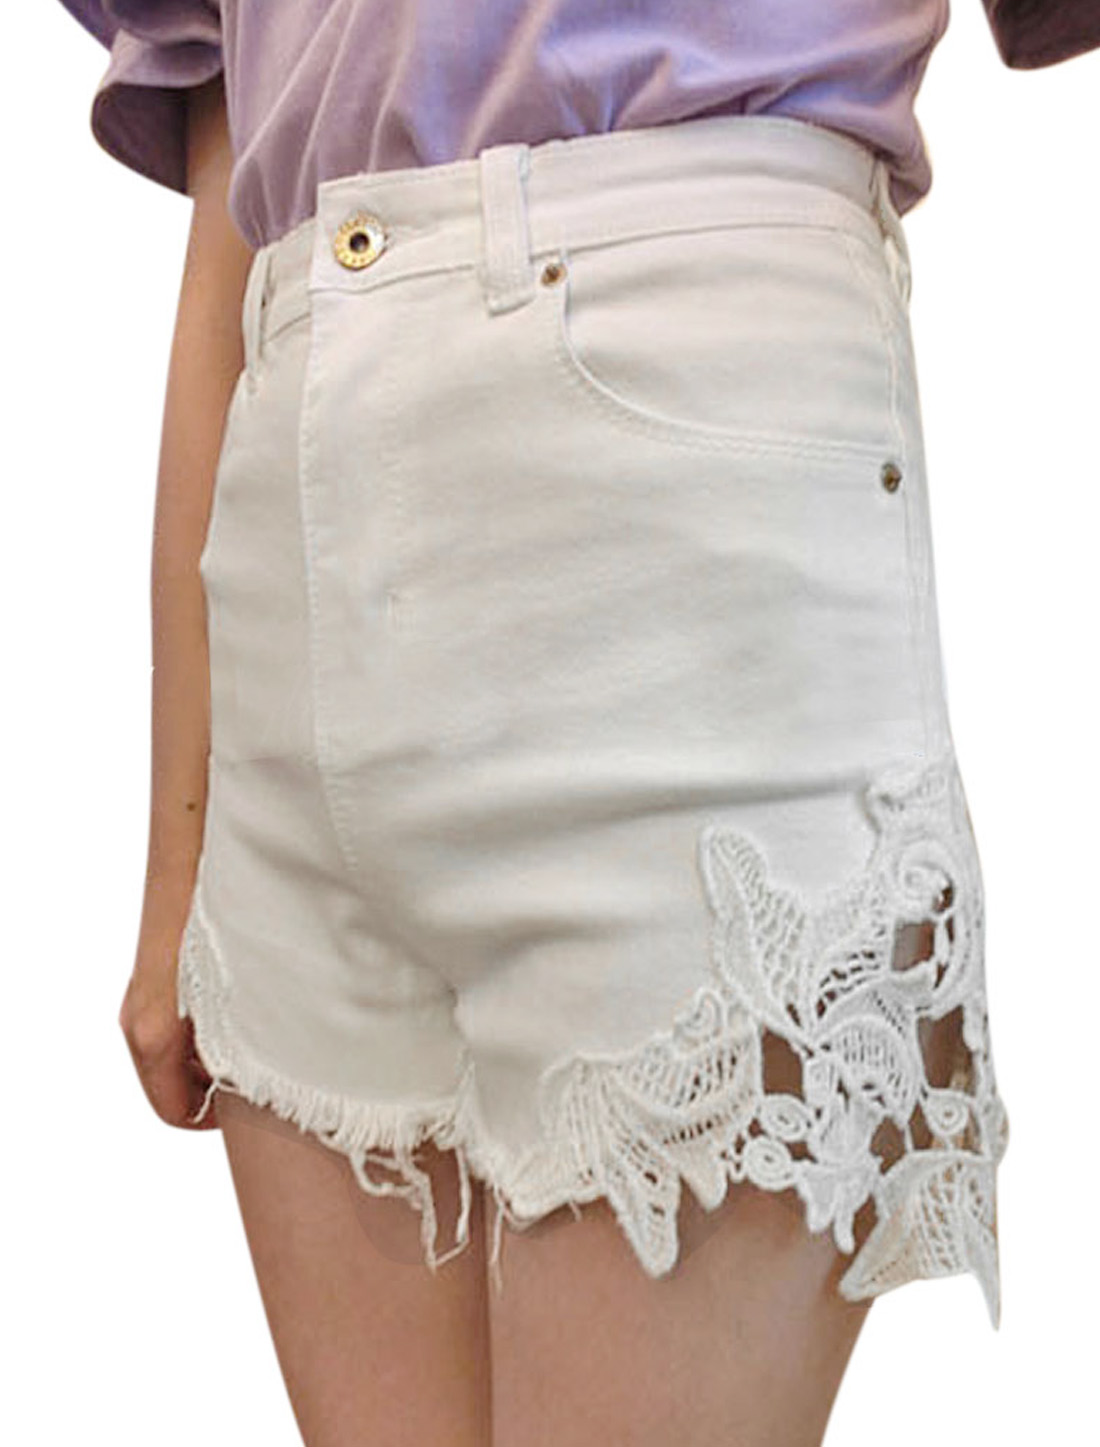 Lady Zip Fly Closure Hip Patch Pockets Crochet Splice Demin Shorts White S